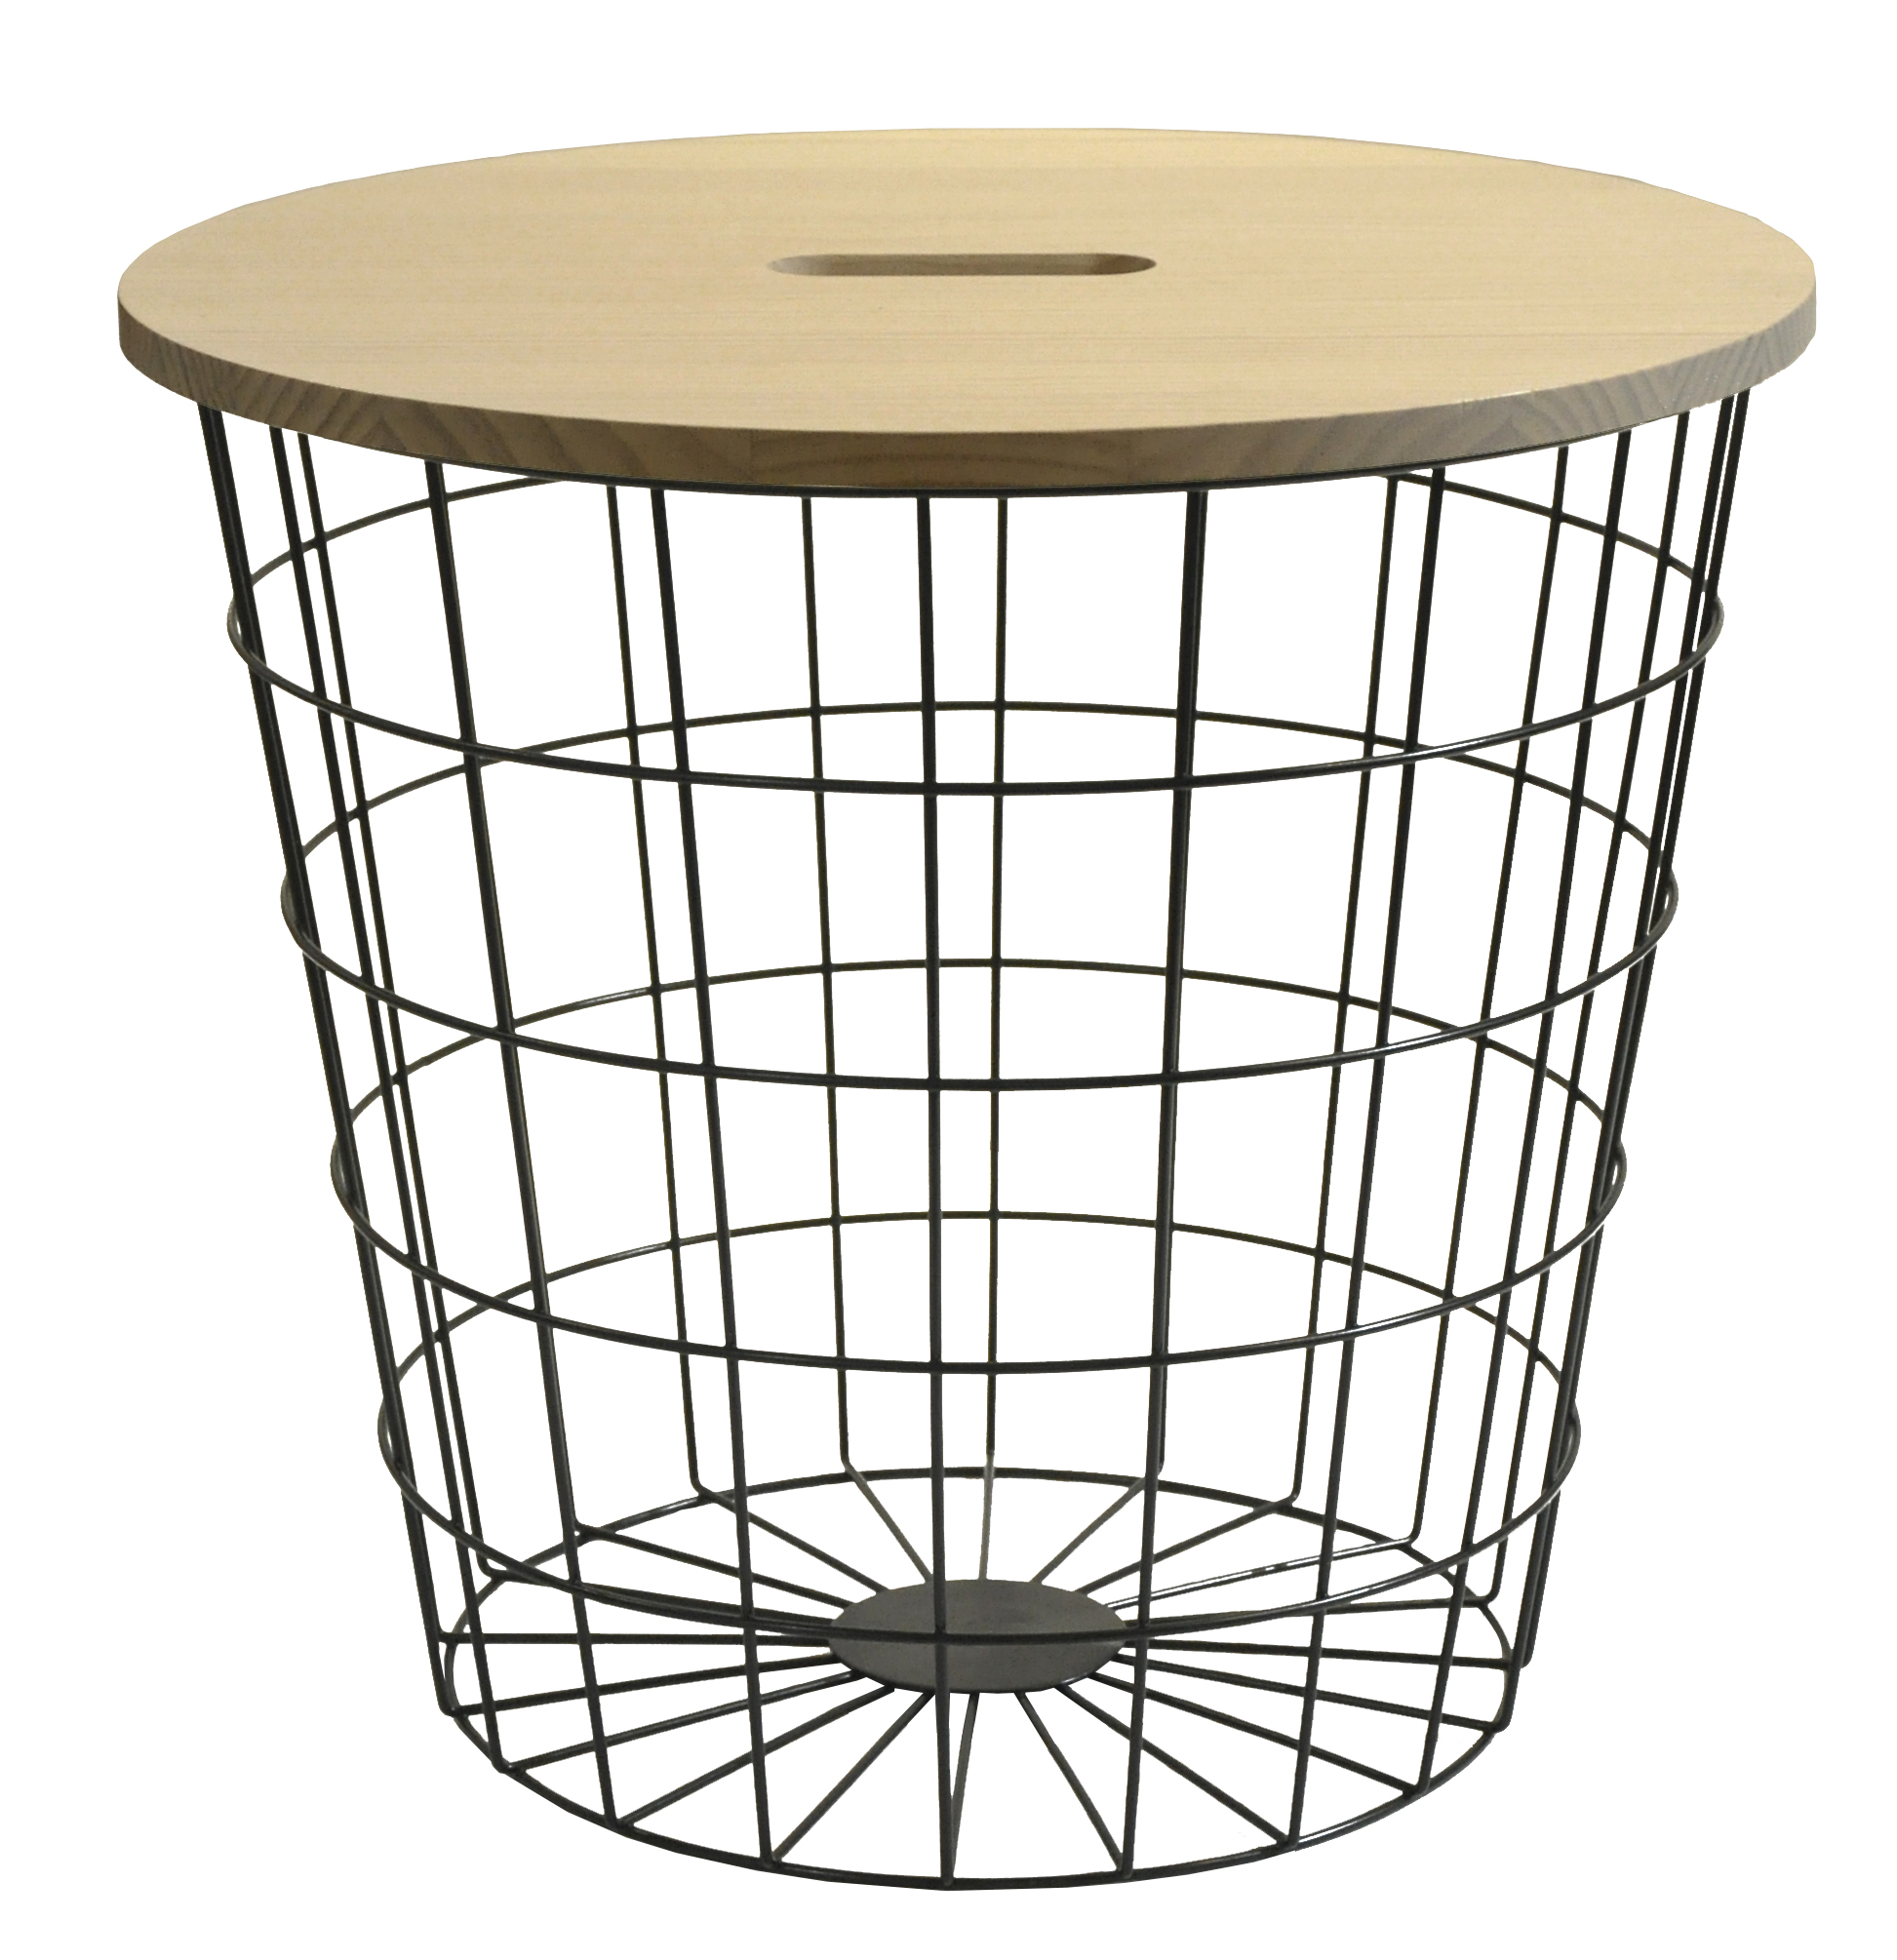 Urban Shop Wire Storage Table with Removable Wooden Top, Multiple Colors